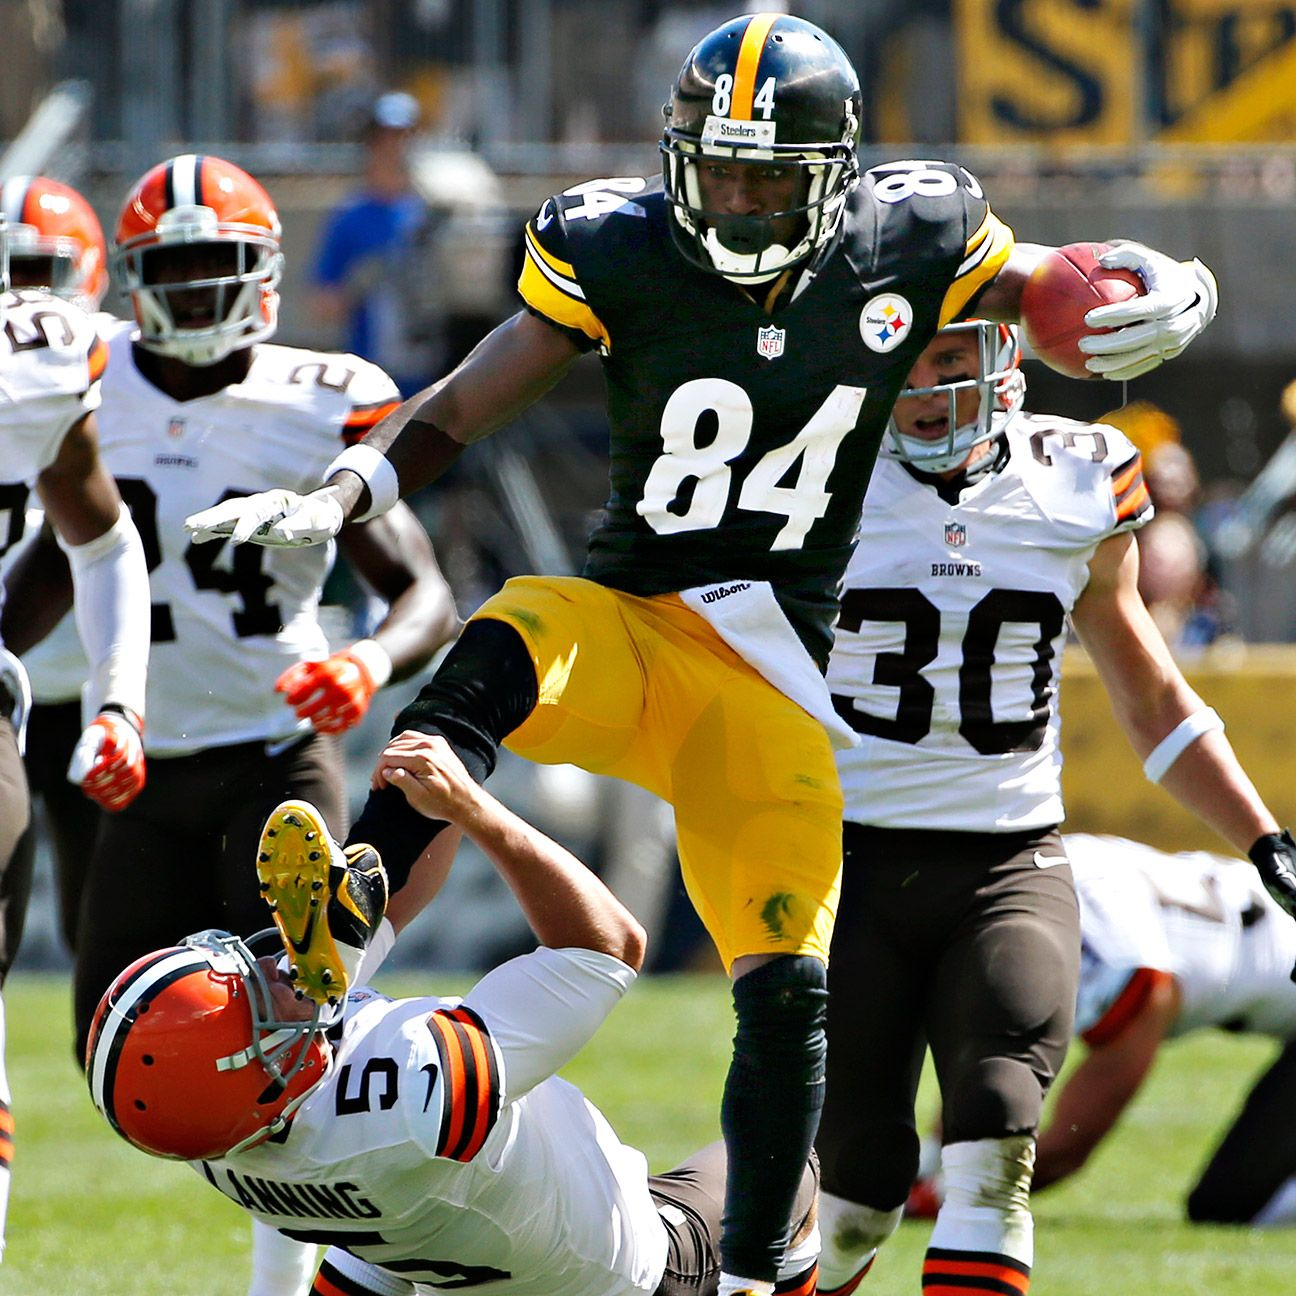 Nfl: Antonio Brown Of Pittsburgh Steelers Jump-kicks Cleveland